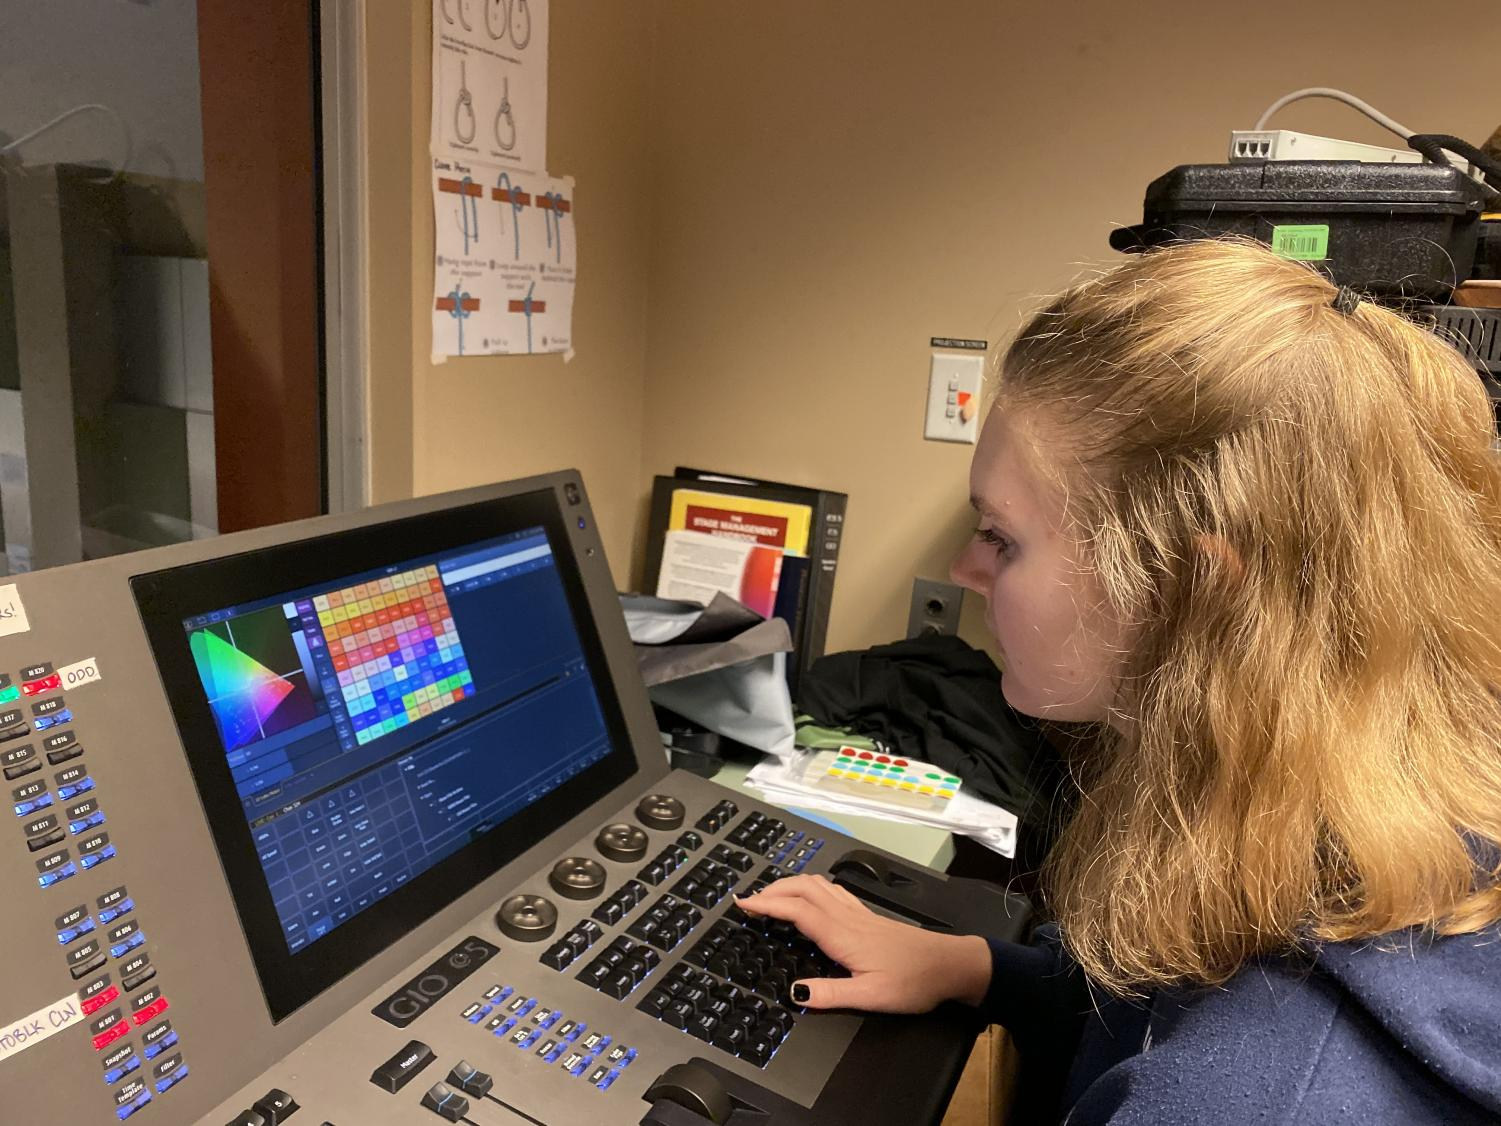 Lighting designer Amy Phipps works on lighting cues for the fall play during tech week. Phipps has spent two months working on lighting design for the production.